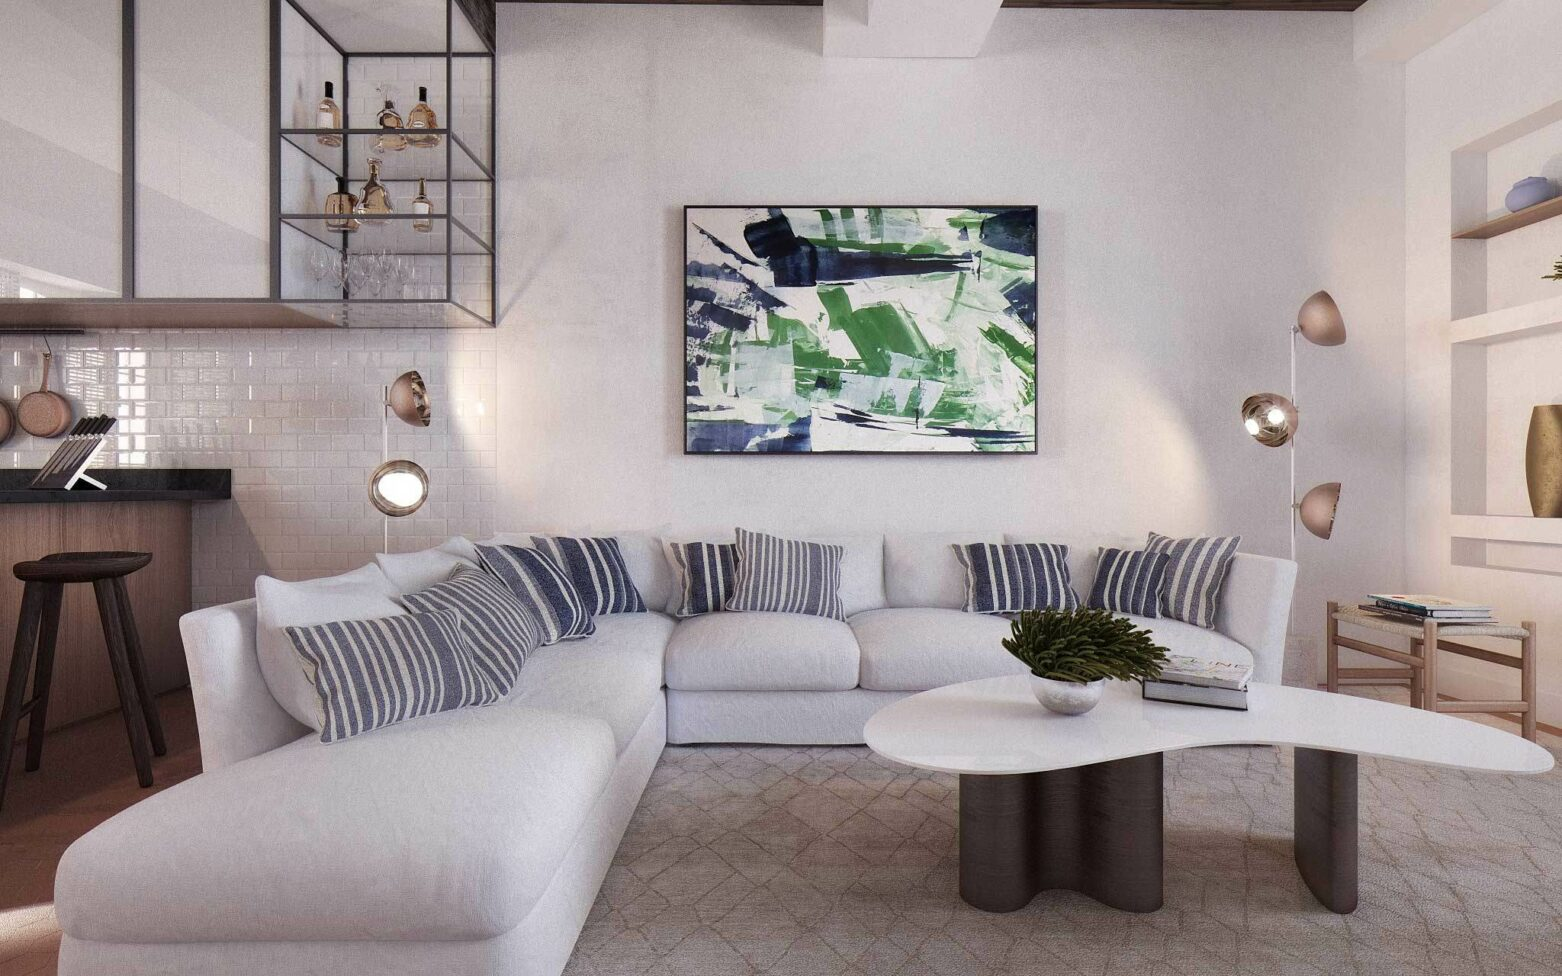 Labvert Sainttropez Appartement 03